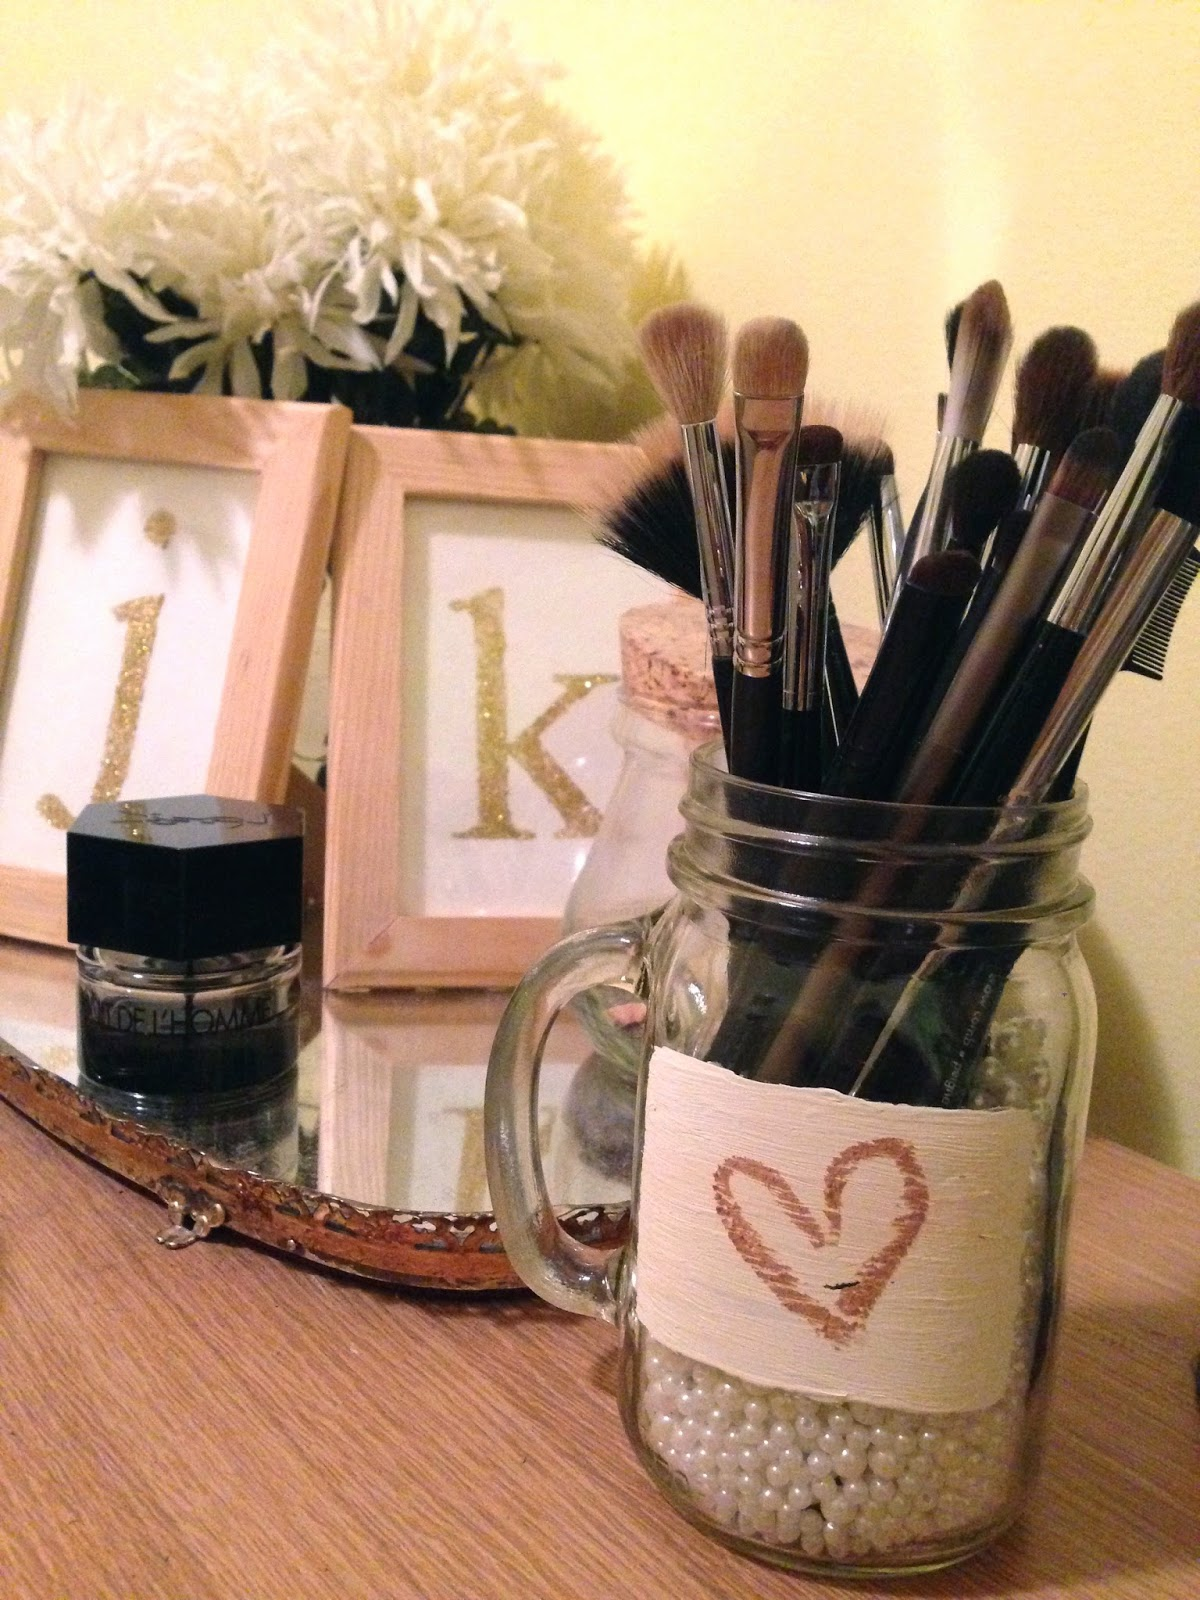 mason jar makeup brush holder. i know a few other beauty bloggers and diy-ers have made their own versions of these types makeup brush holders, but decided to create my unique mason jar holder c